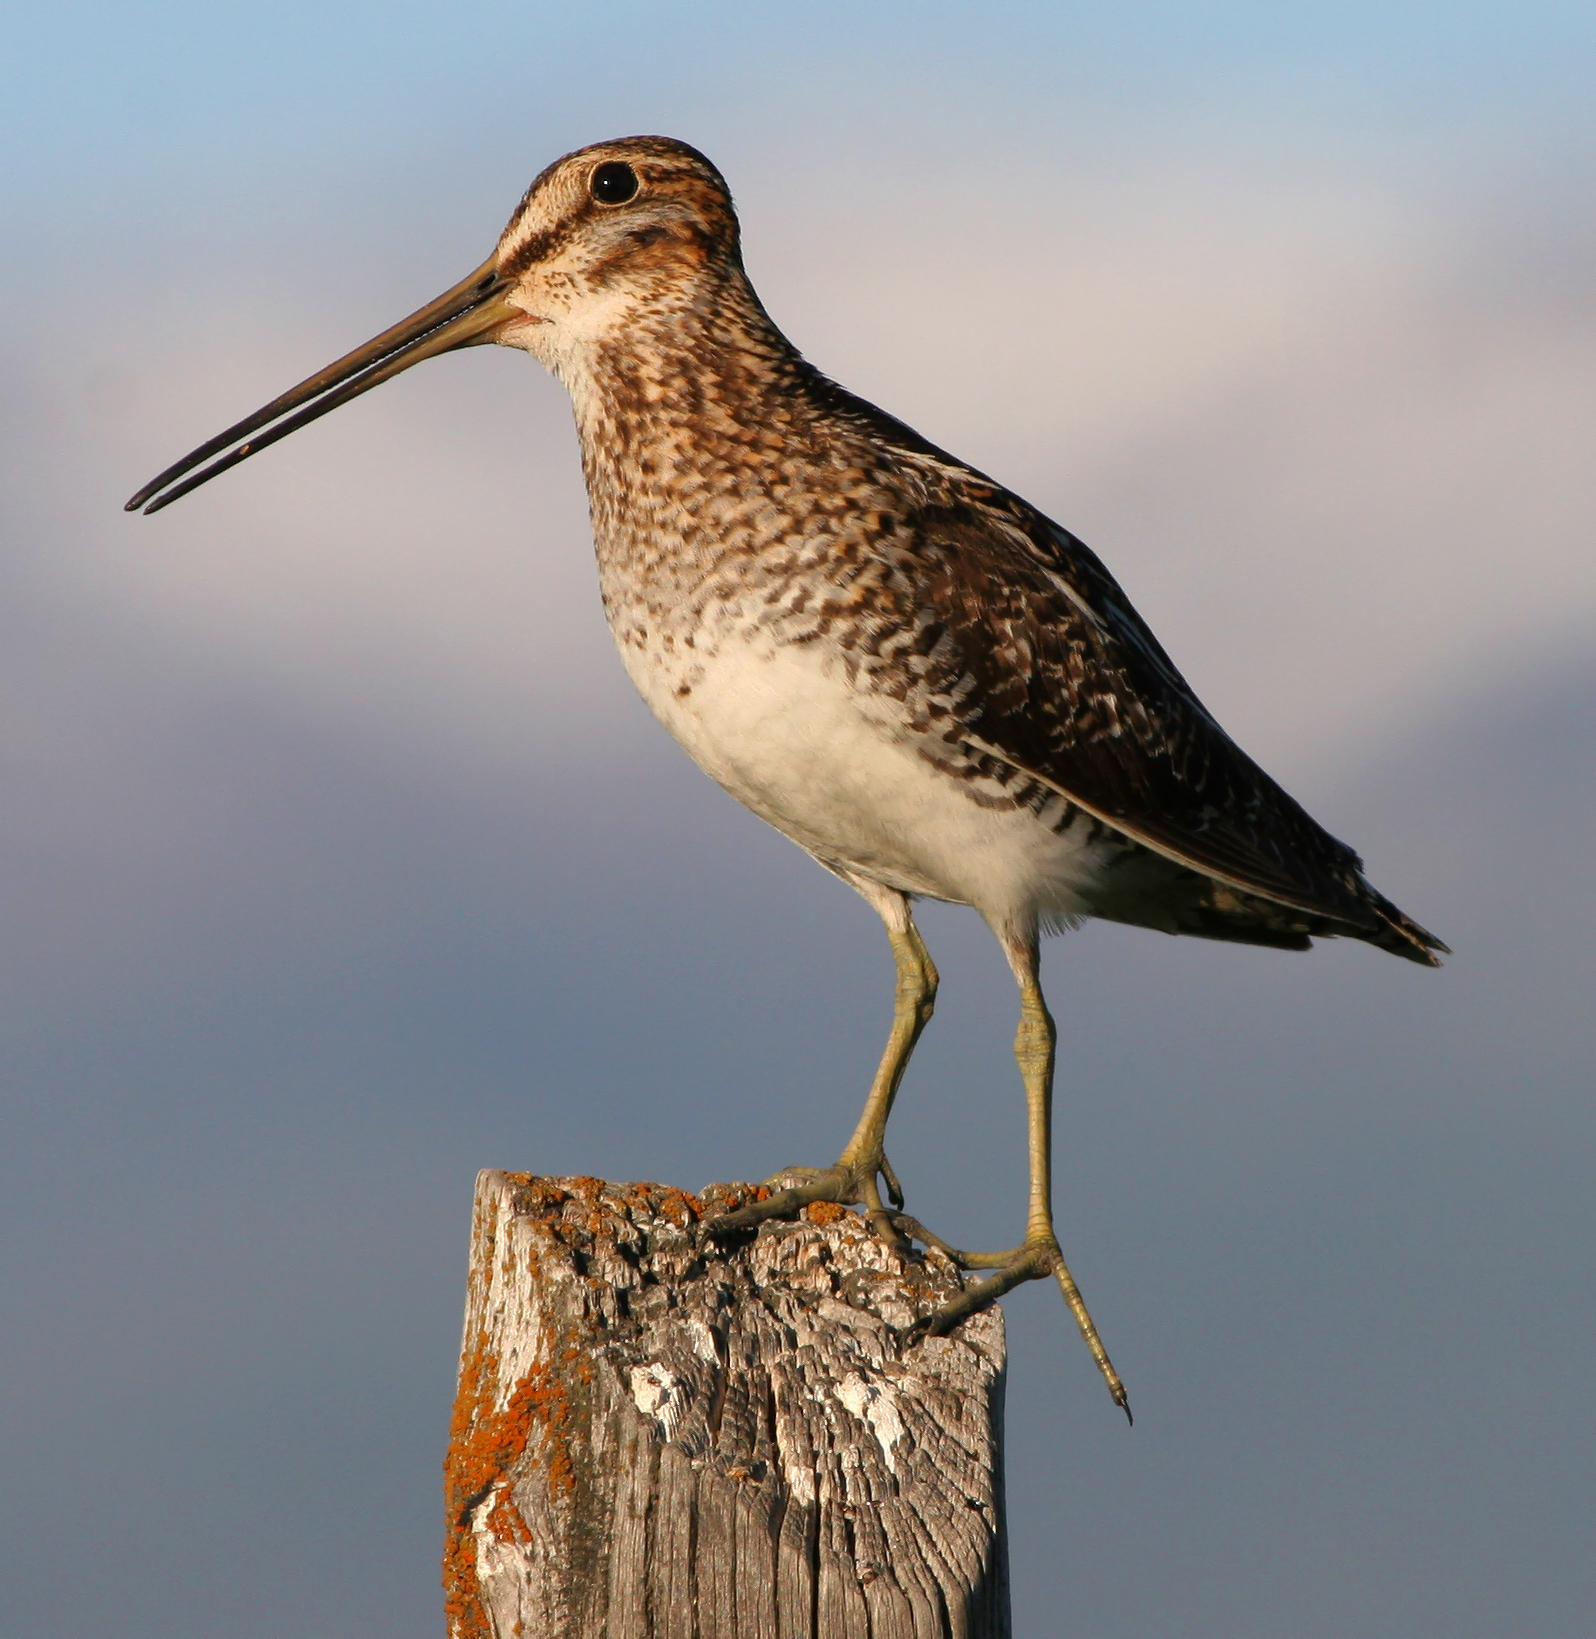 Common_snipe_fencepost.jpg